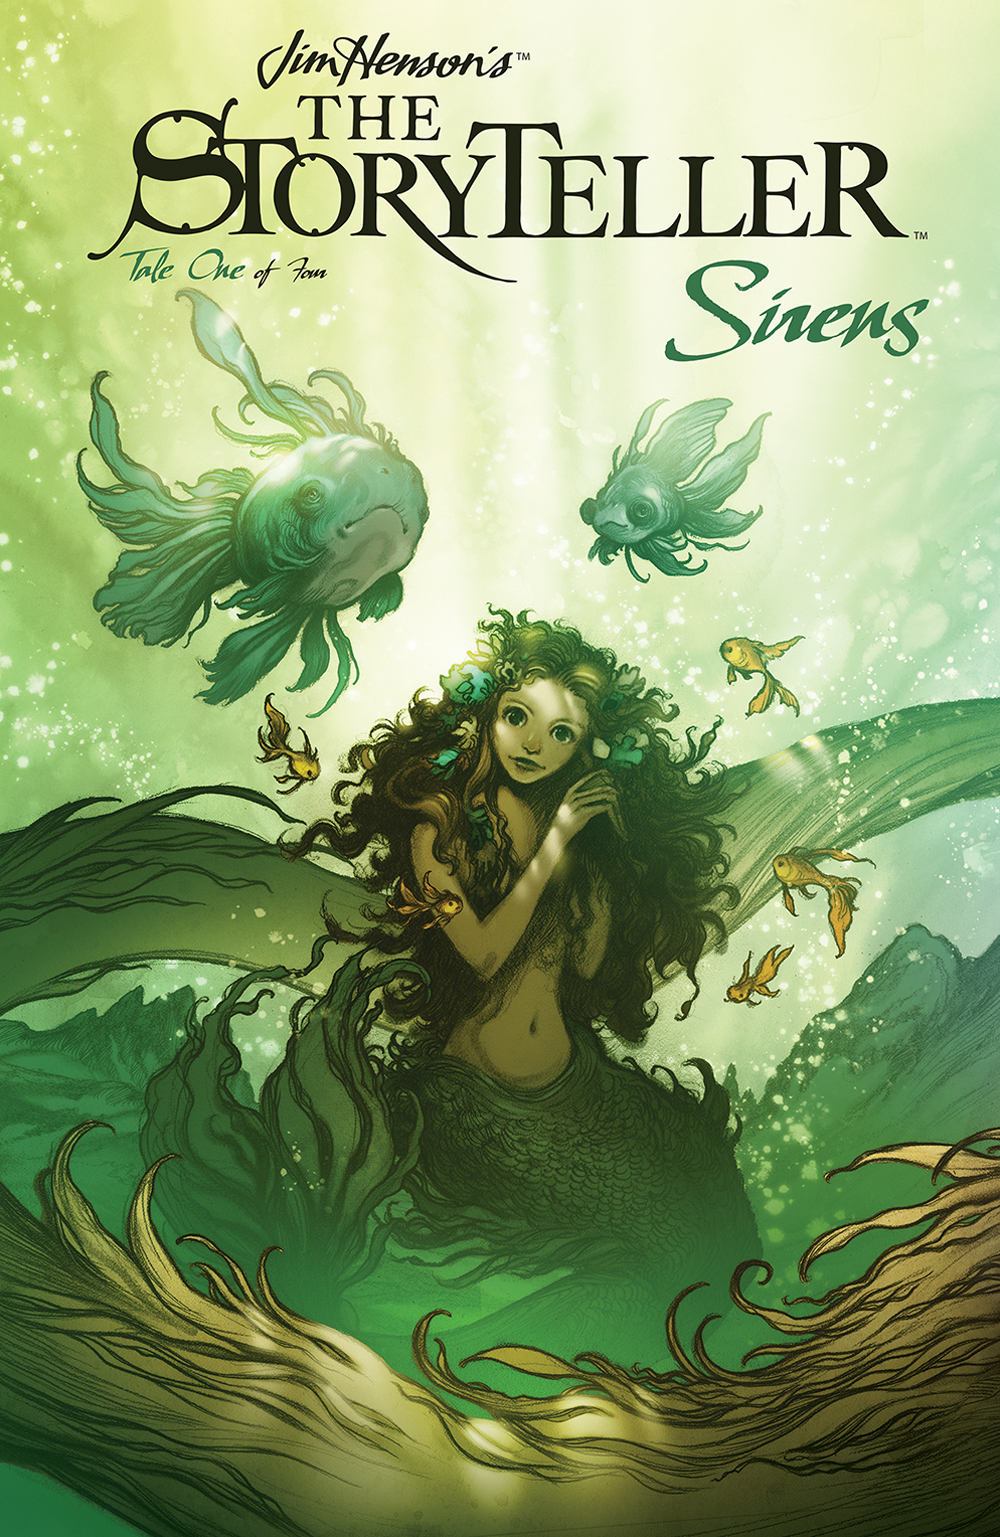 Jim Henson's The Storyteller: Sirens #1  is out now.